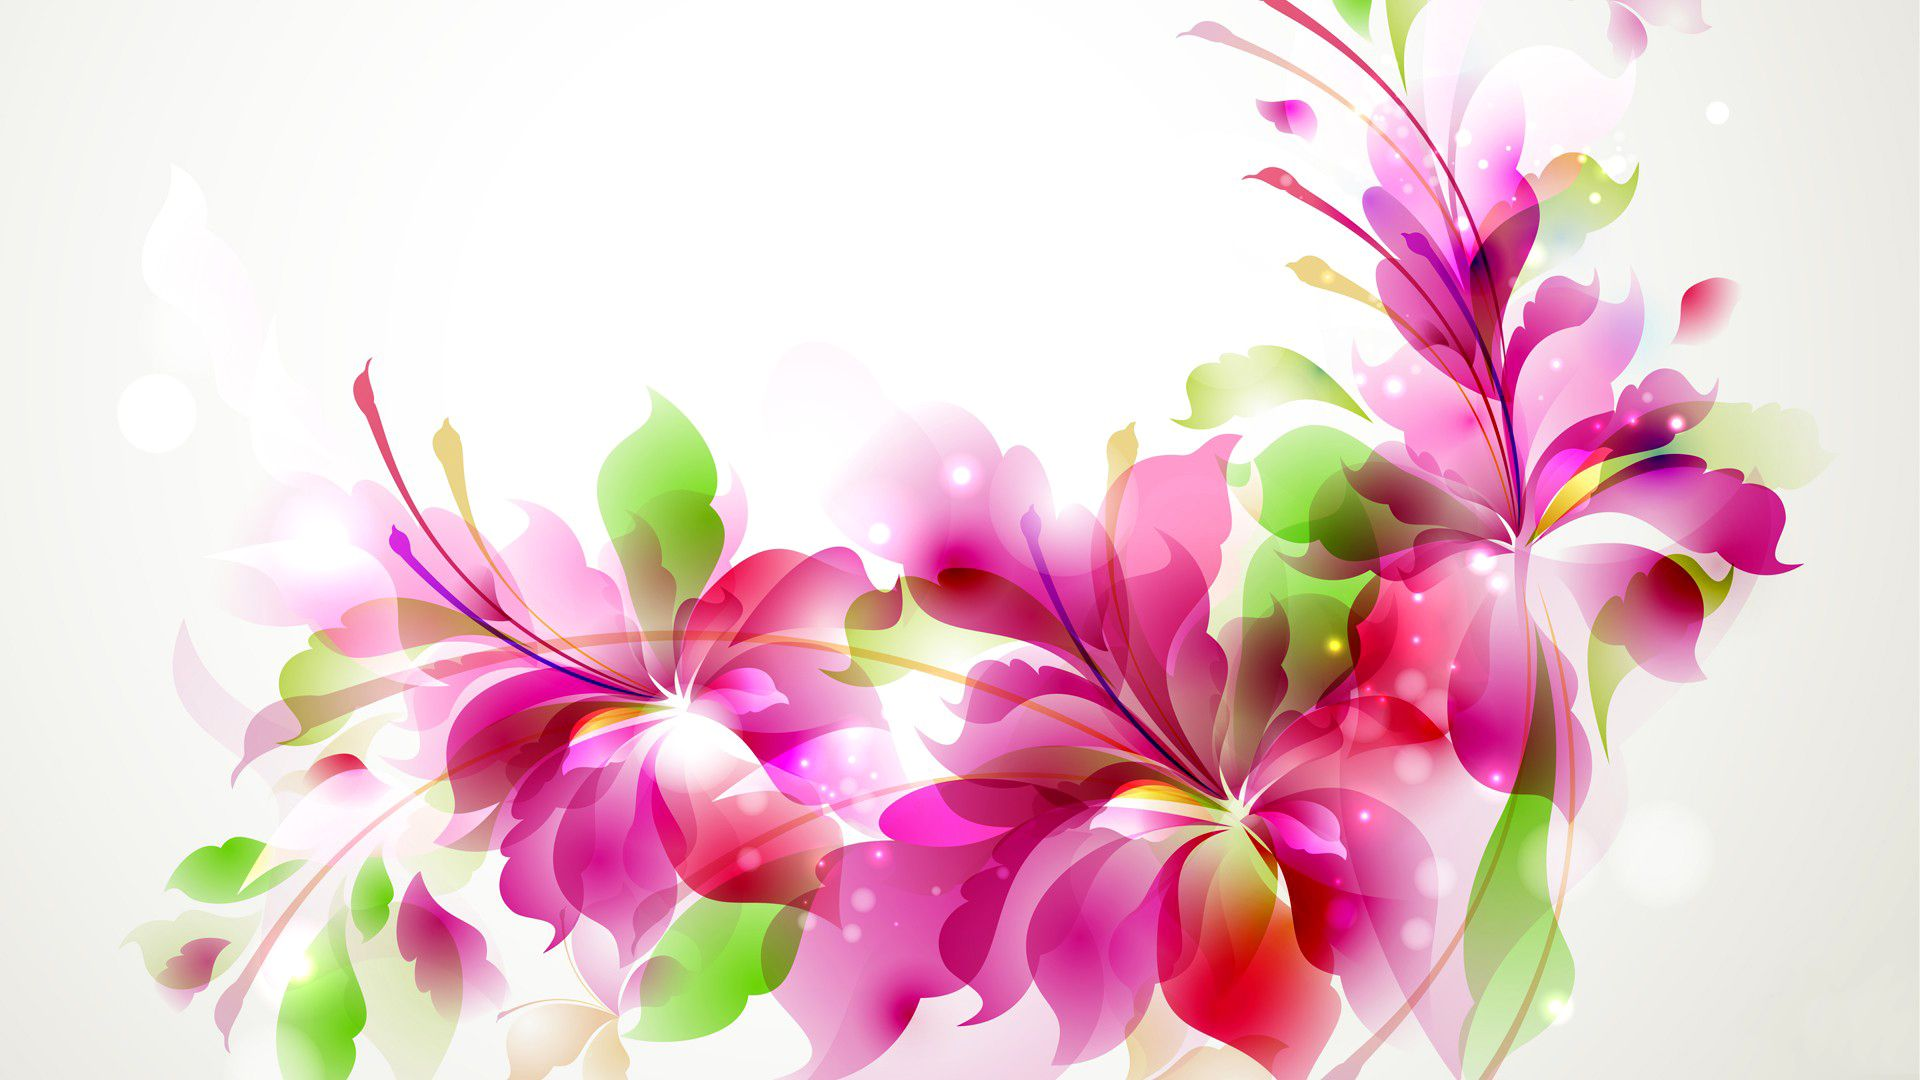 Abstraction With Flowers, Flowers Art Vector